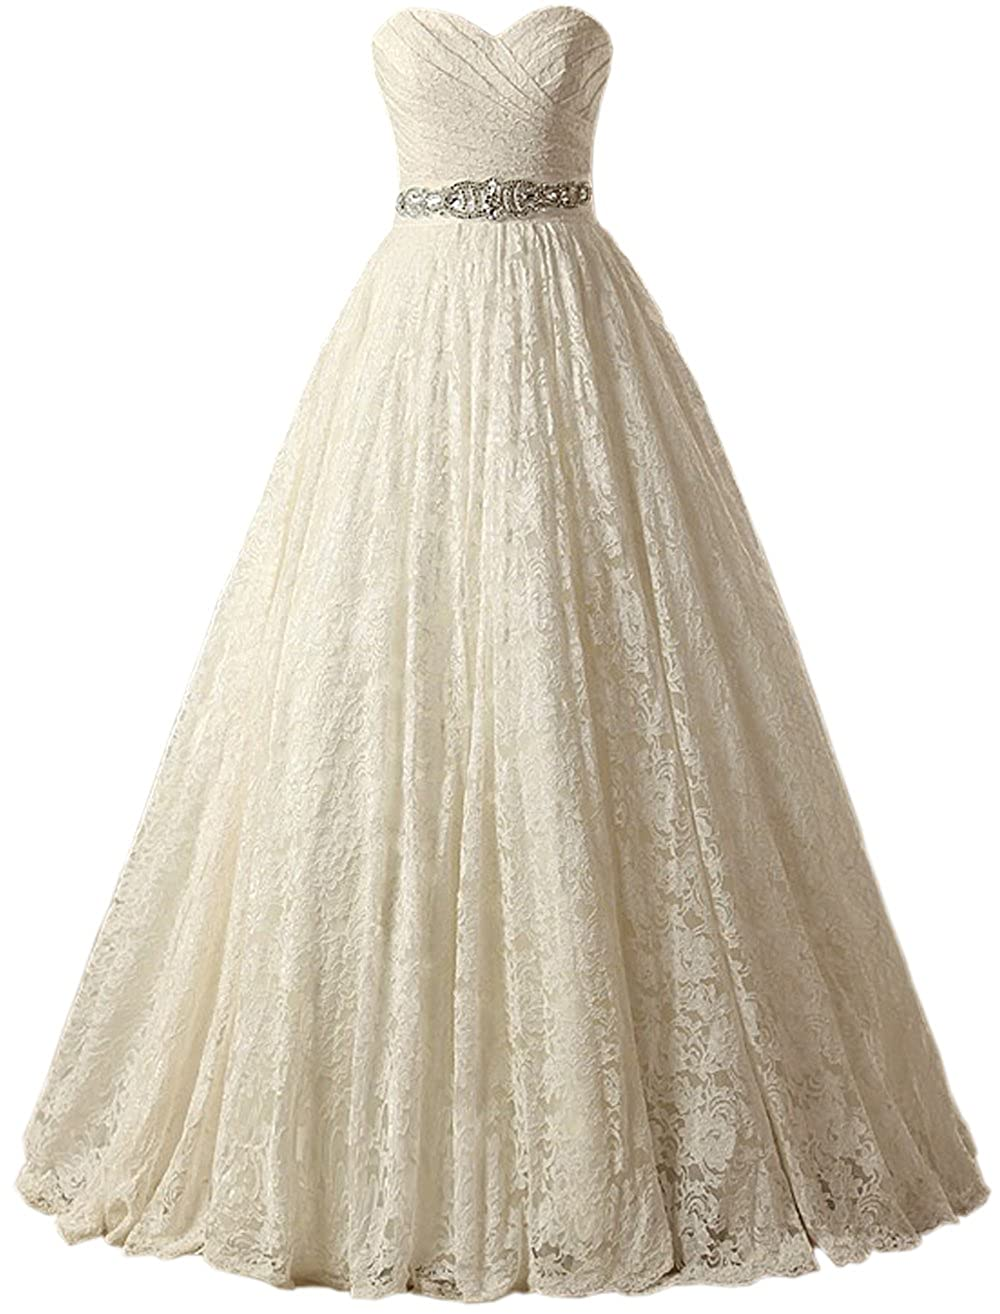 5b2b6708 SOLOVEDRESS Women's Ball Gown Lace Princess Wedding Dress 2017 Sash Beaded  Bridal Evening Gown at Amazon Women's Clothing store: